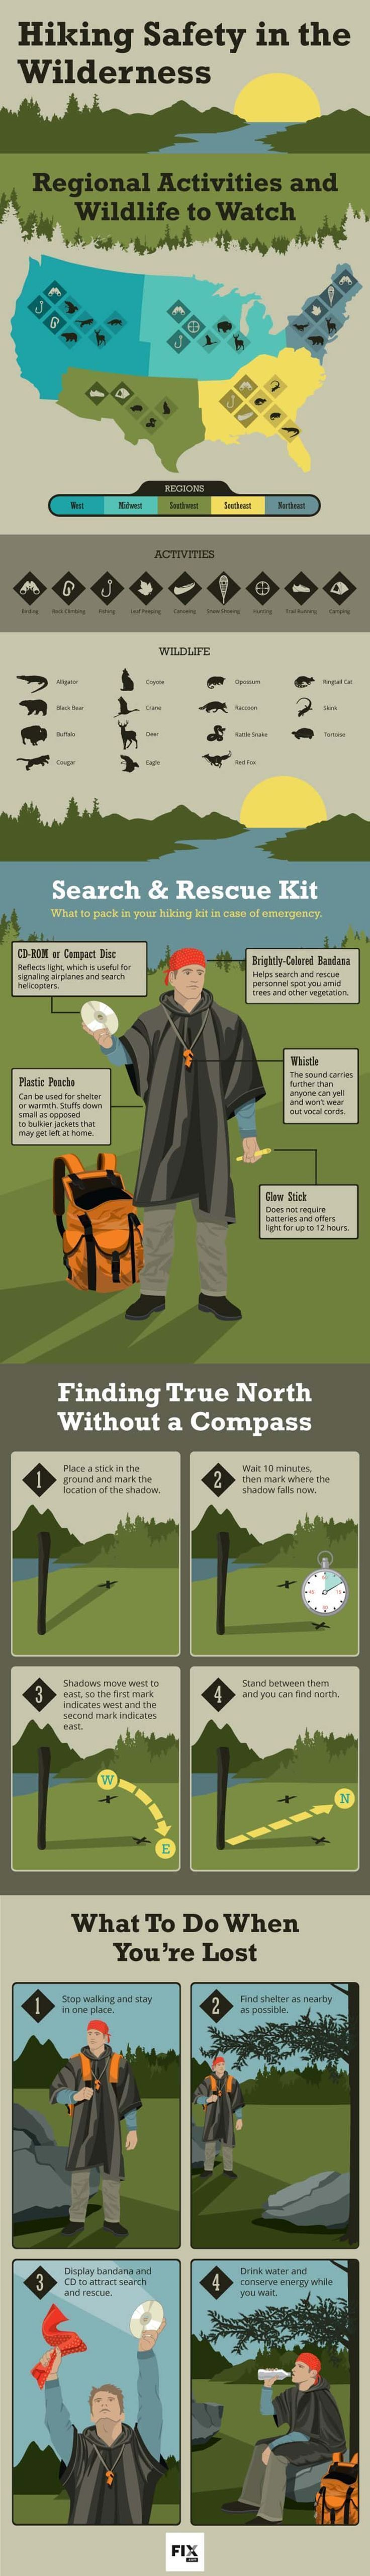 Hiking Safety Tips | How to Stay Safe While Hiking in the Wilderness - Outdoor Survival Skills by Survival Life at http://survivallife.com/2016/01/15/25478/